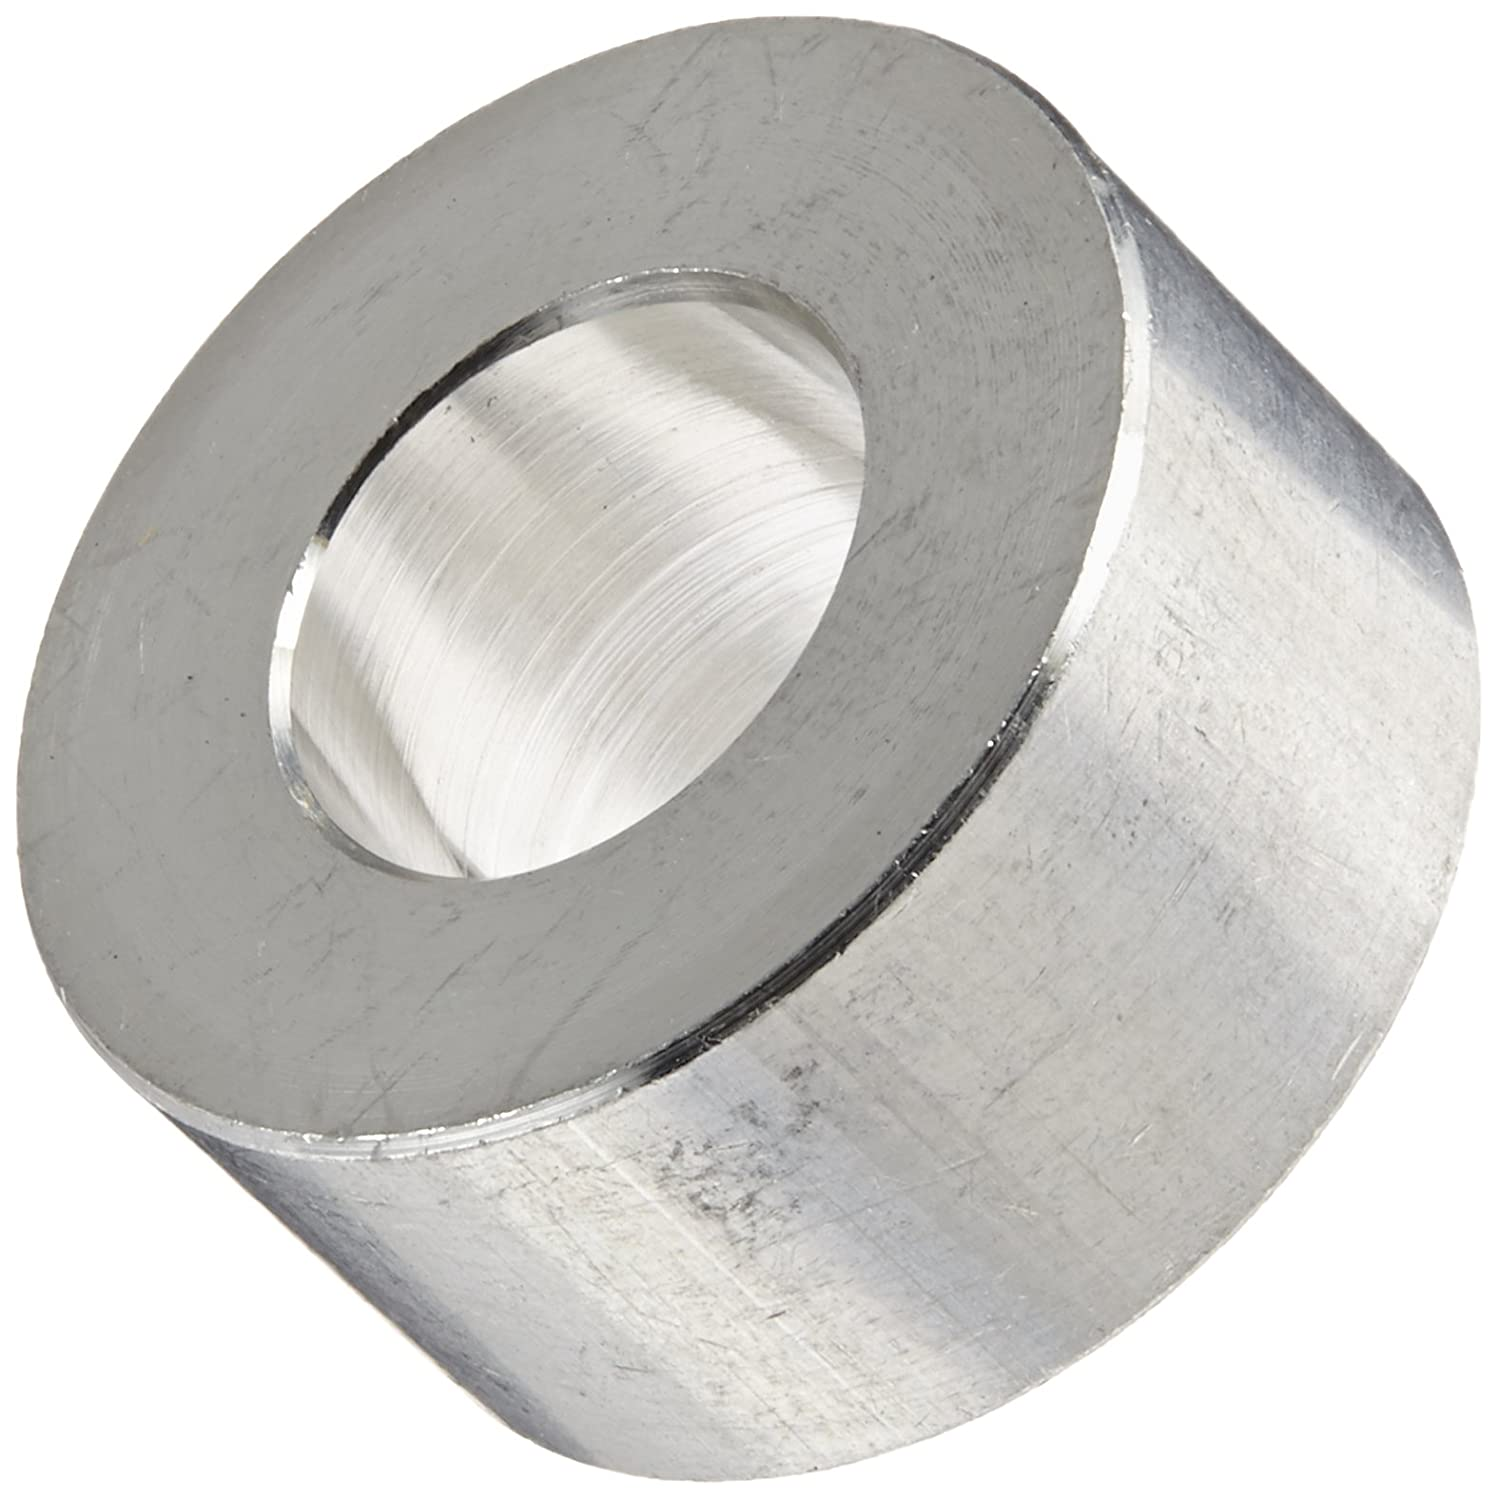 0.192 ID Round Spacer Aluminum Plain Finish Pack of 10 #10 Screw Size 3//8 OD 1//8 Length